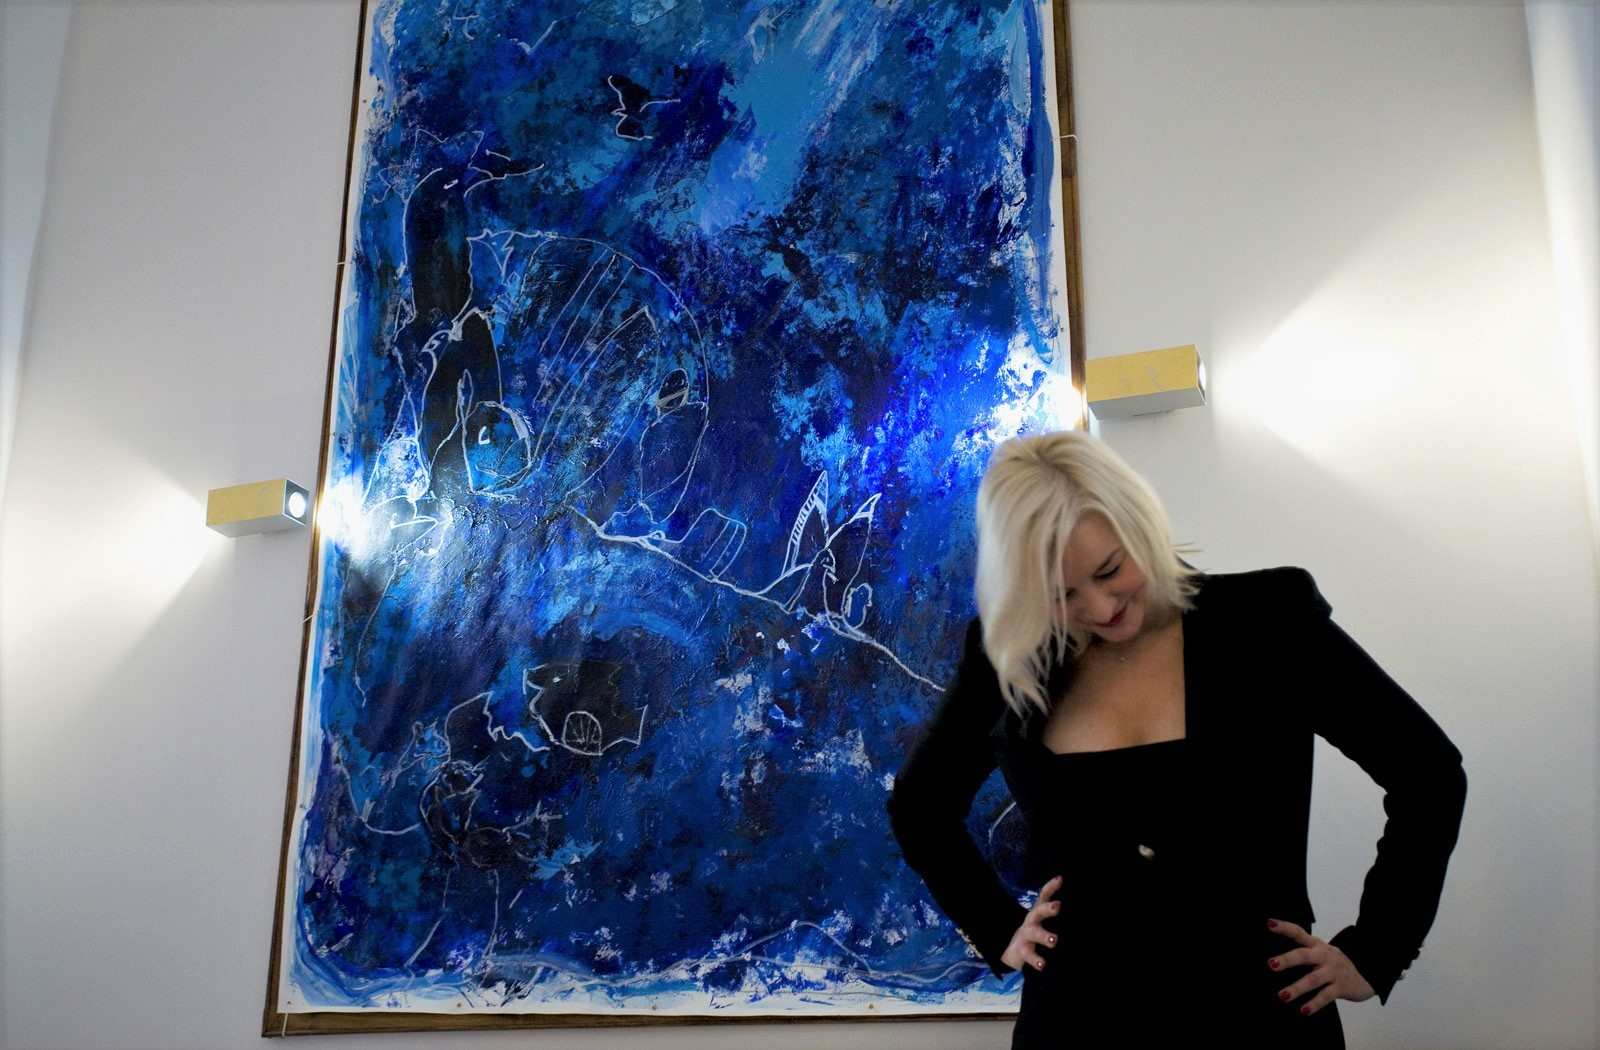 Kim Okura in front of her artwork BIG BLUE at VCA Vienna City Apartments™